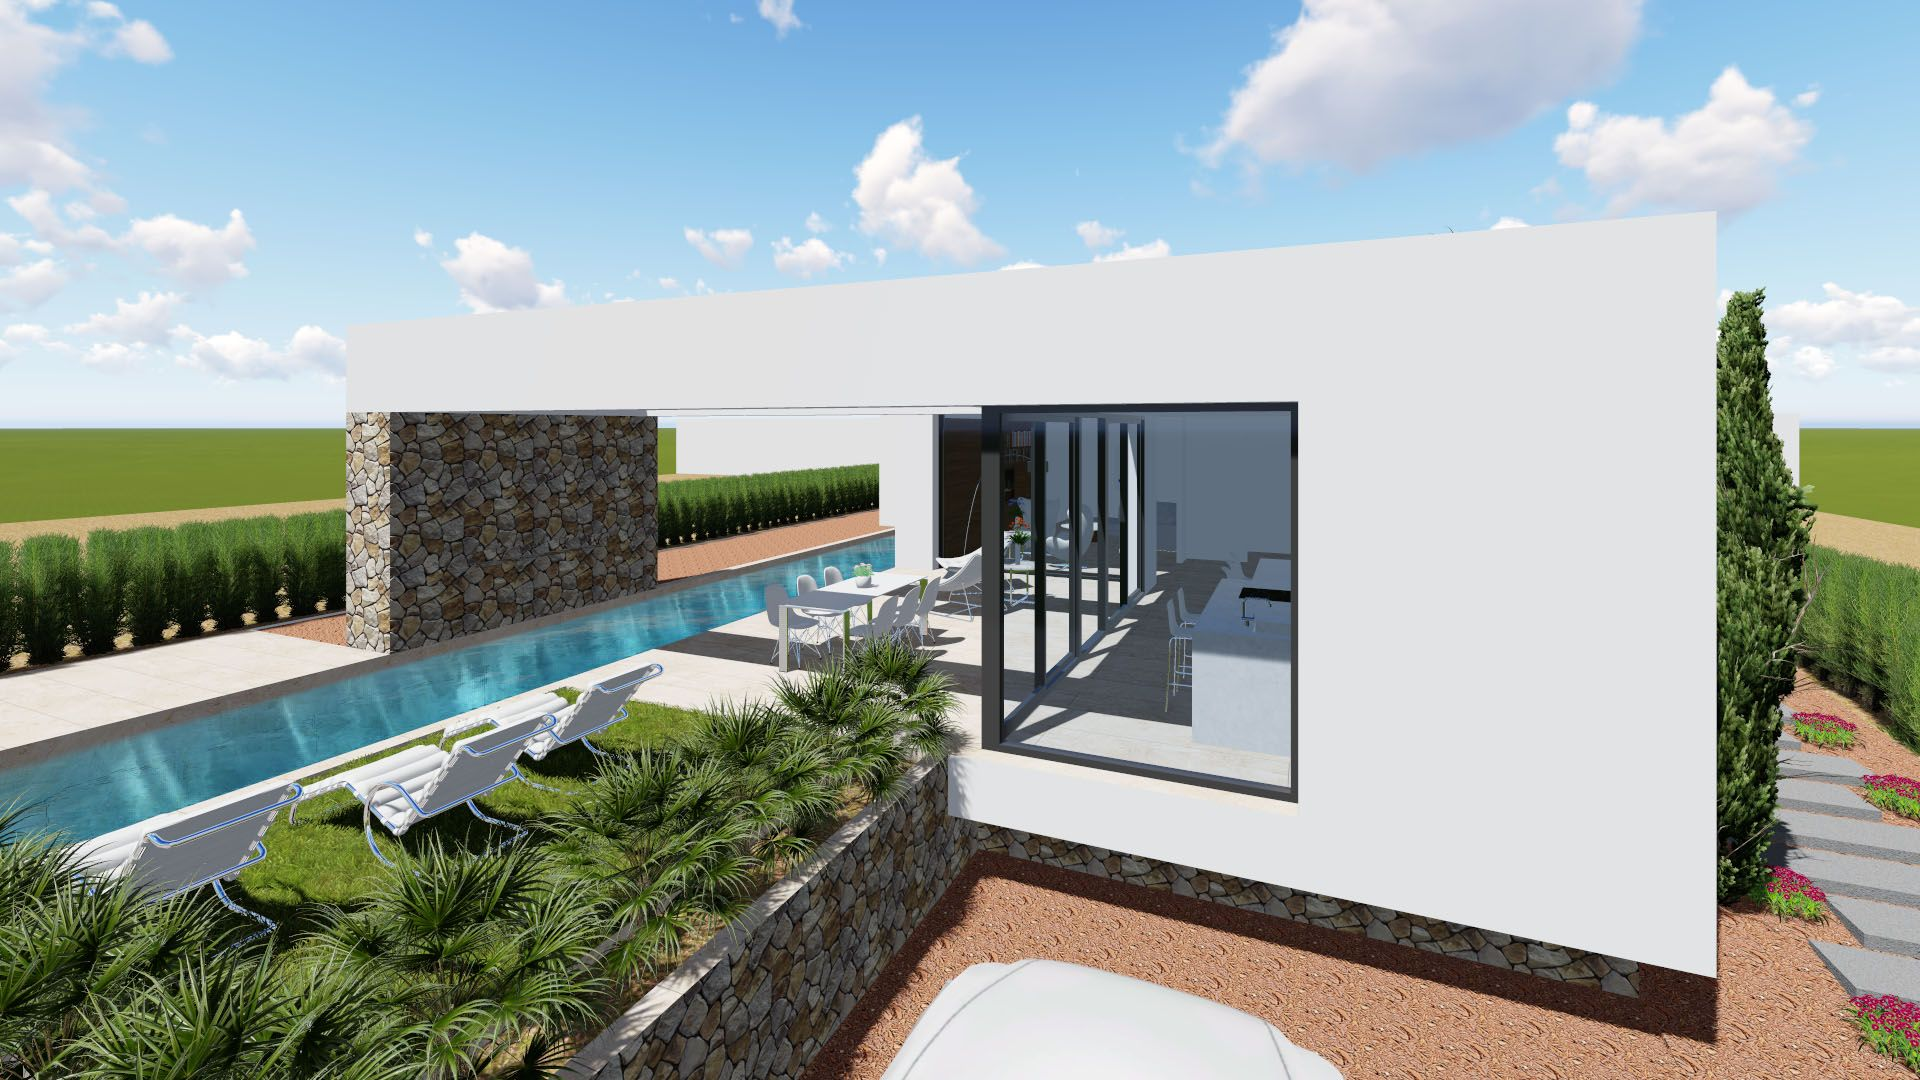 New 3 bedroom detached villa with private pool and garden in Benijófar 3